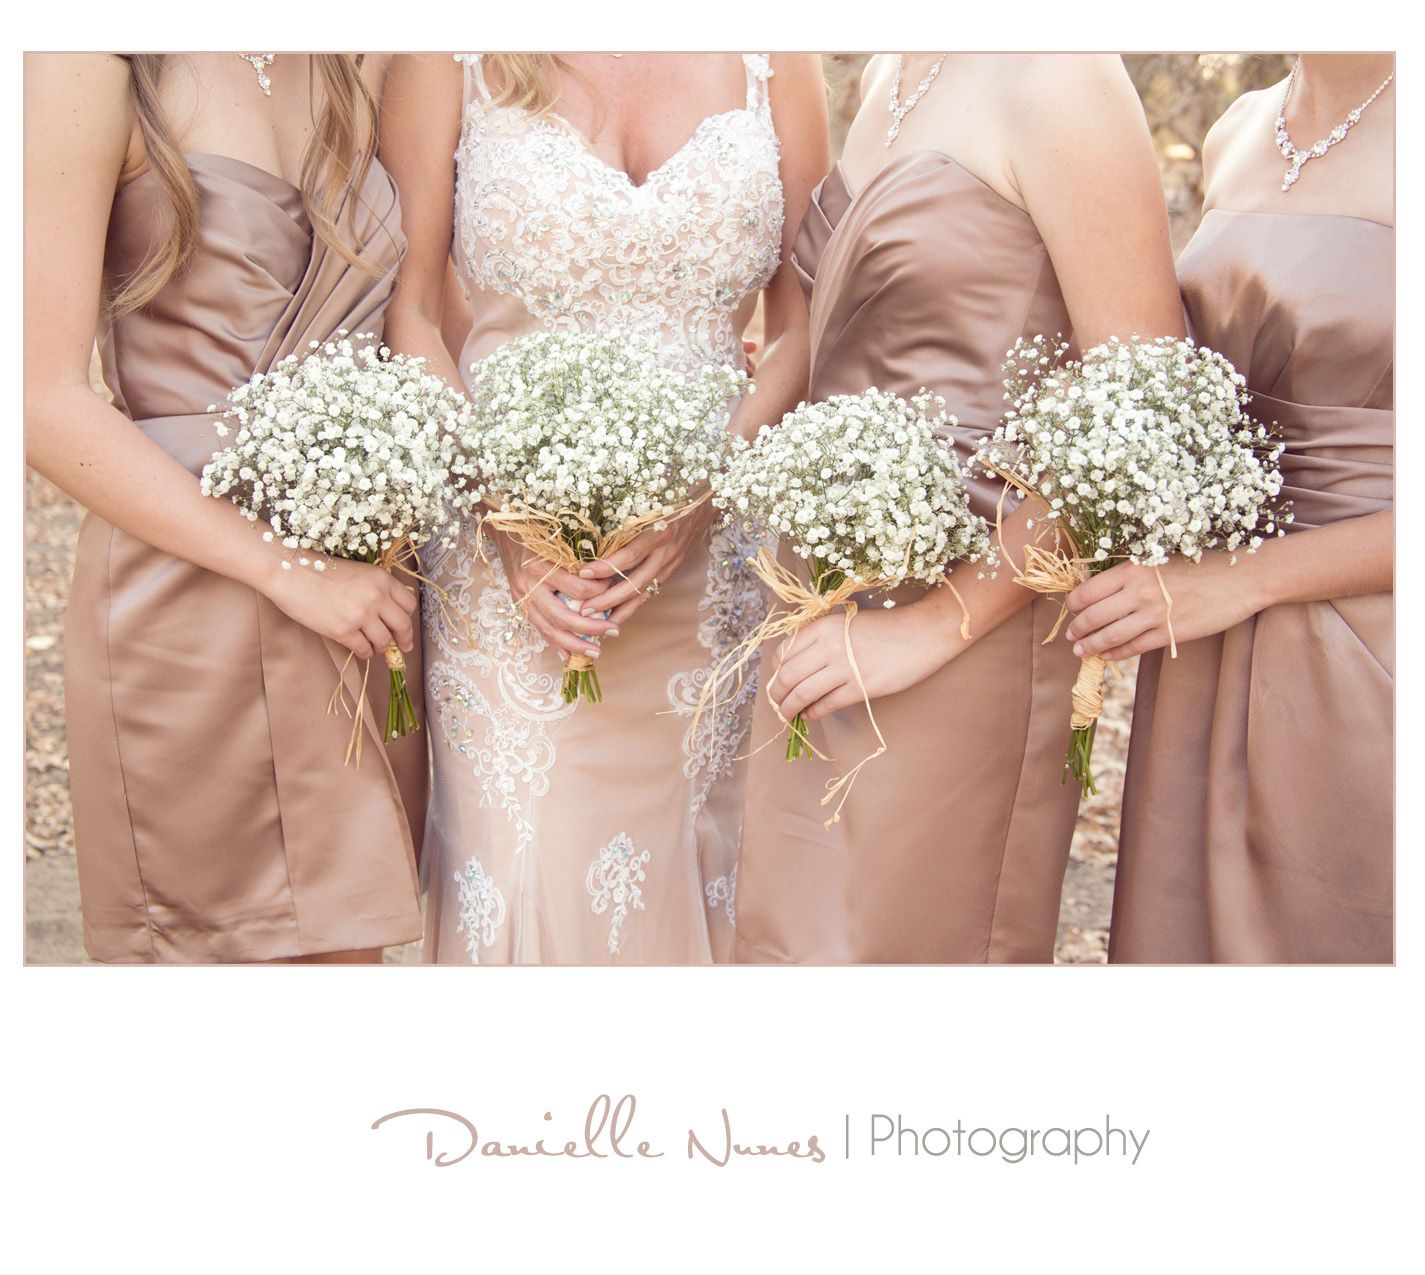 California Central Coast Wedding  #weddings #Photographer  #Natural Light, #Kaweah Oaks Preserve, #Neutrals, Beige & Beige, Nudes www.daniellenunesphotography.com